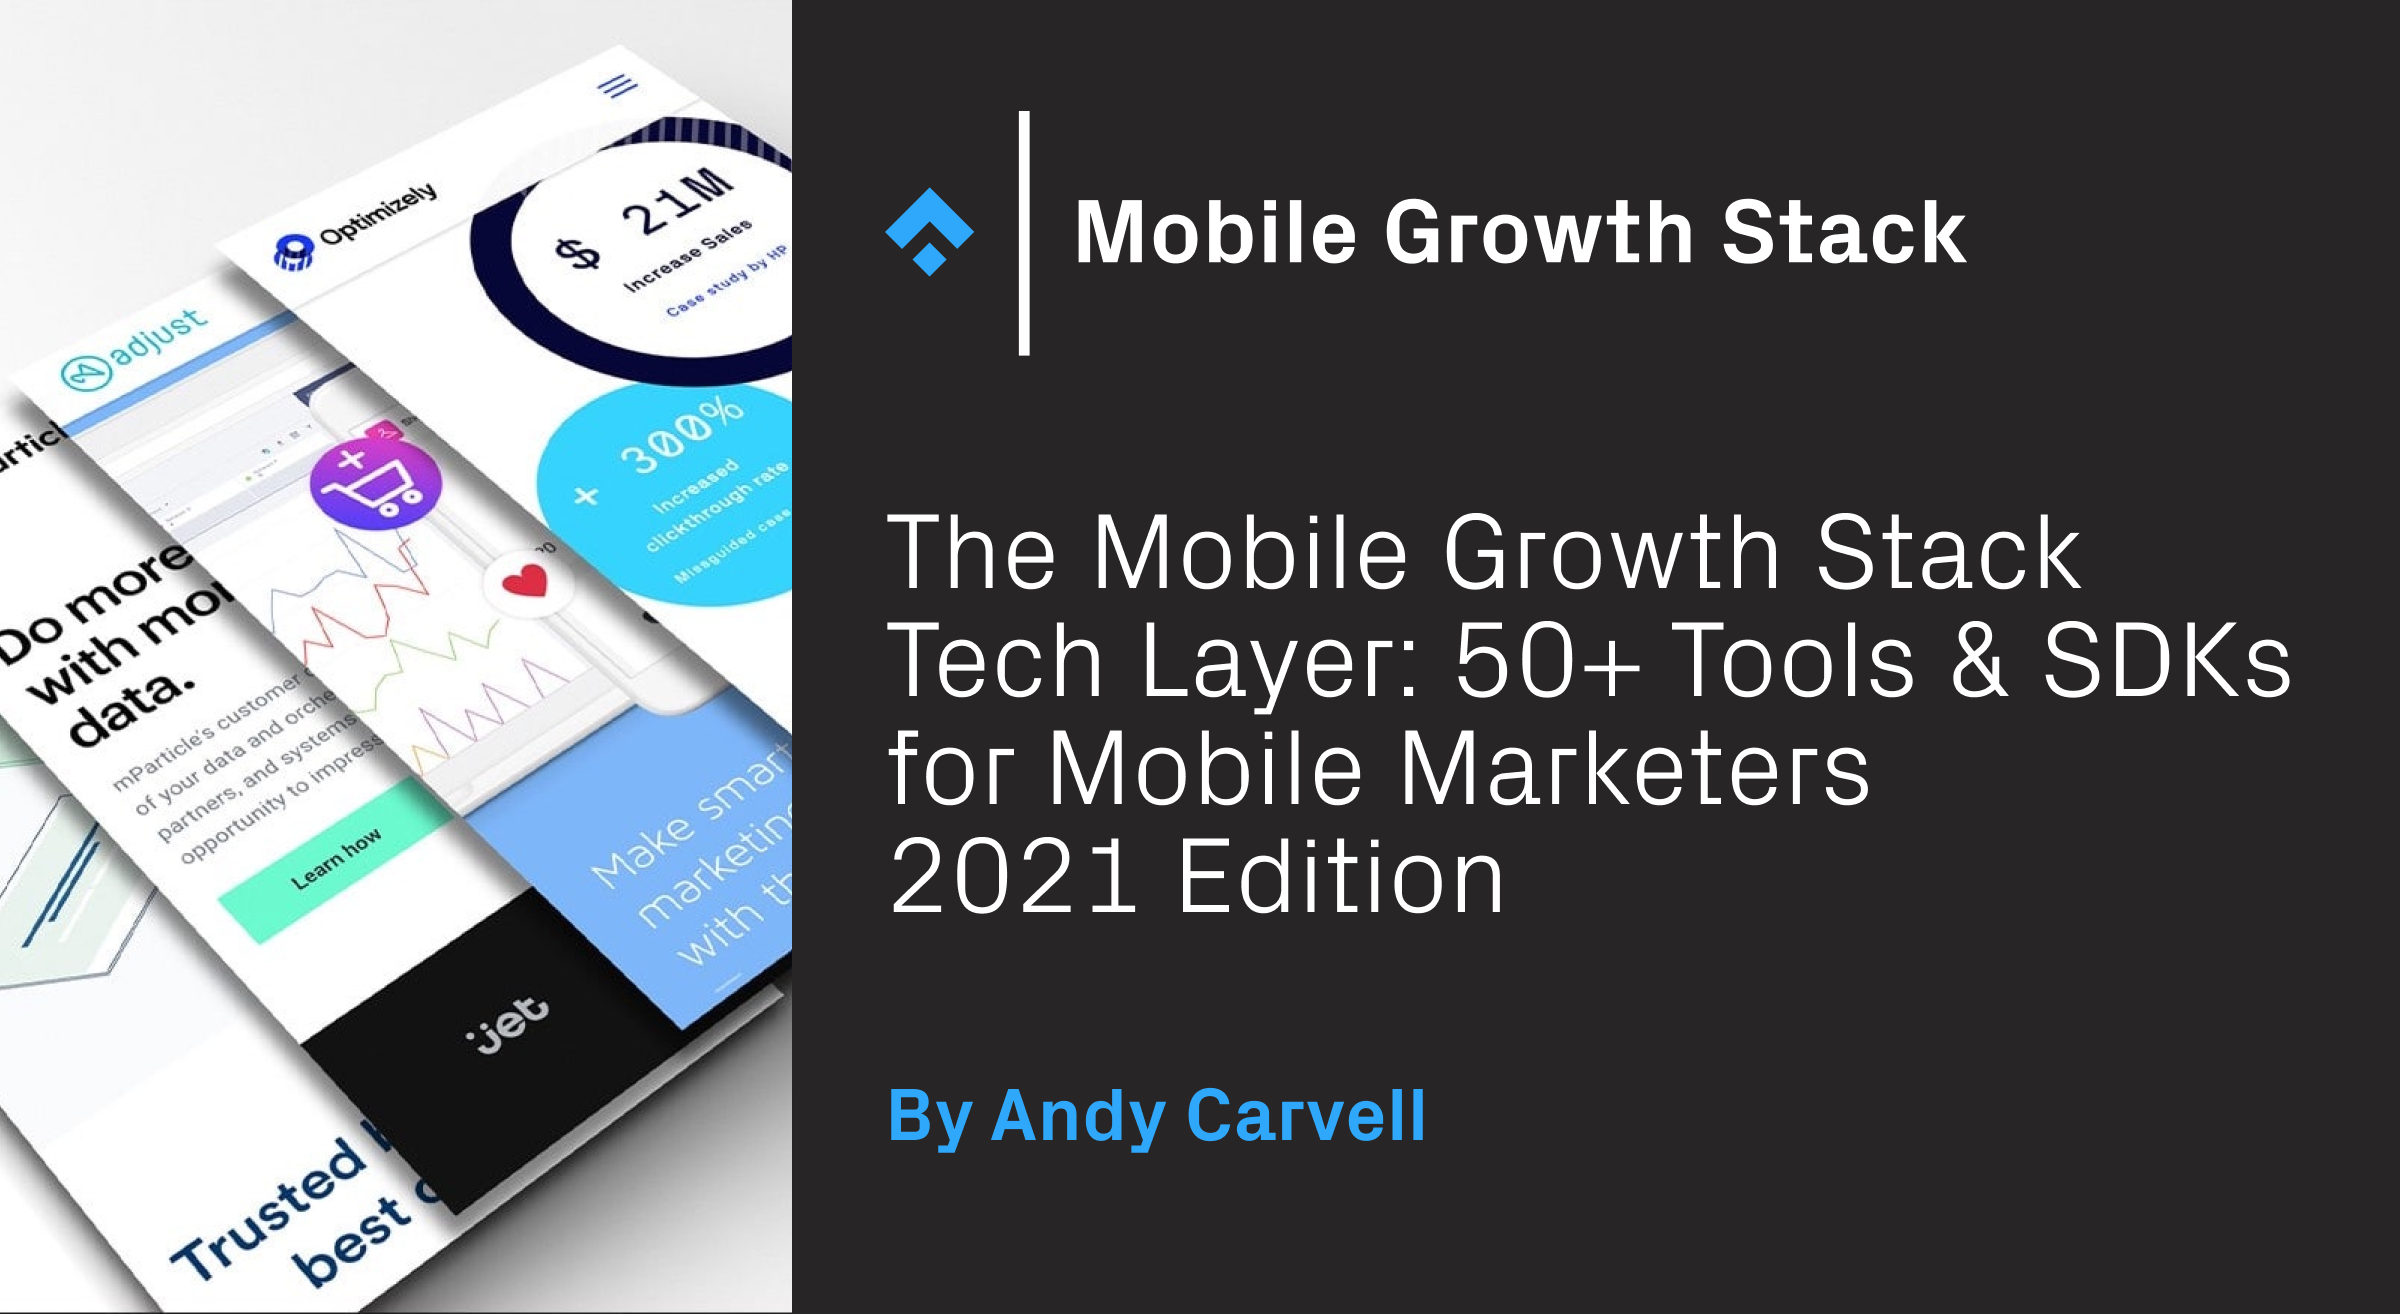 mobilegrowthstacktechlayer